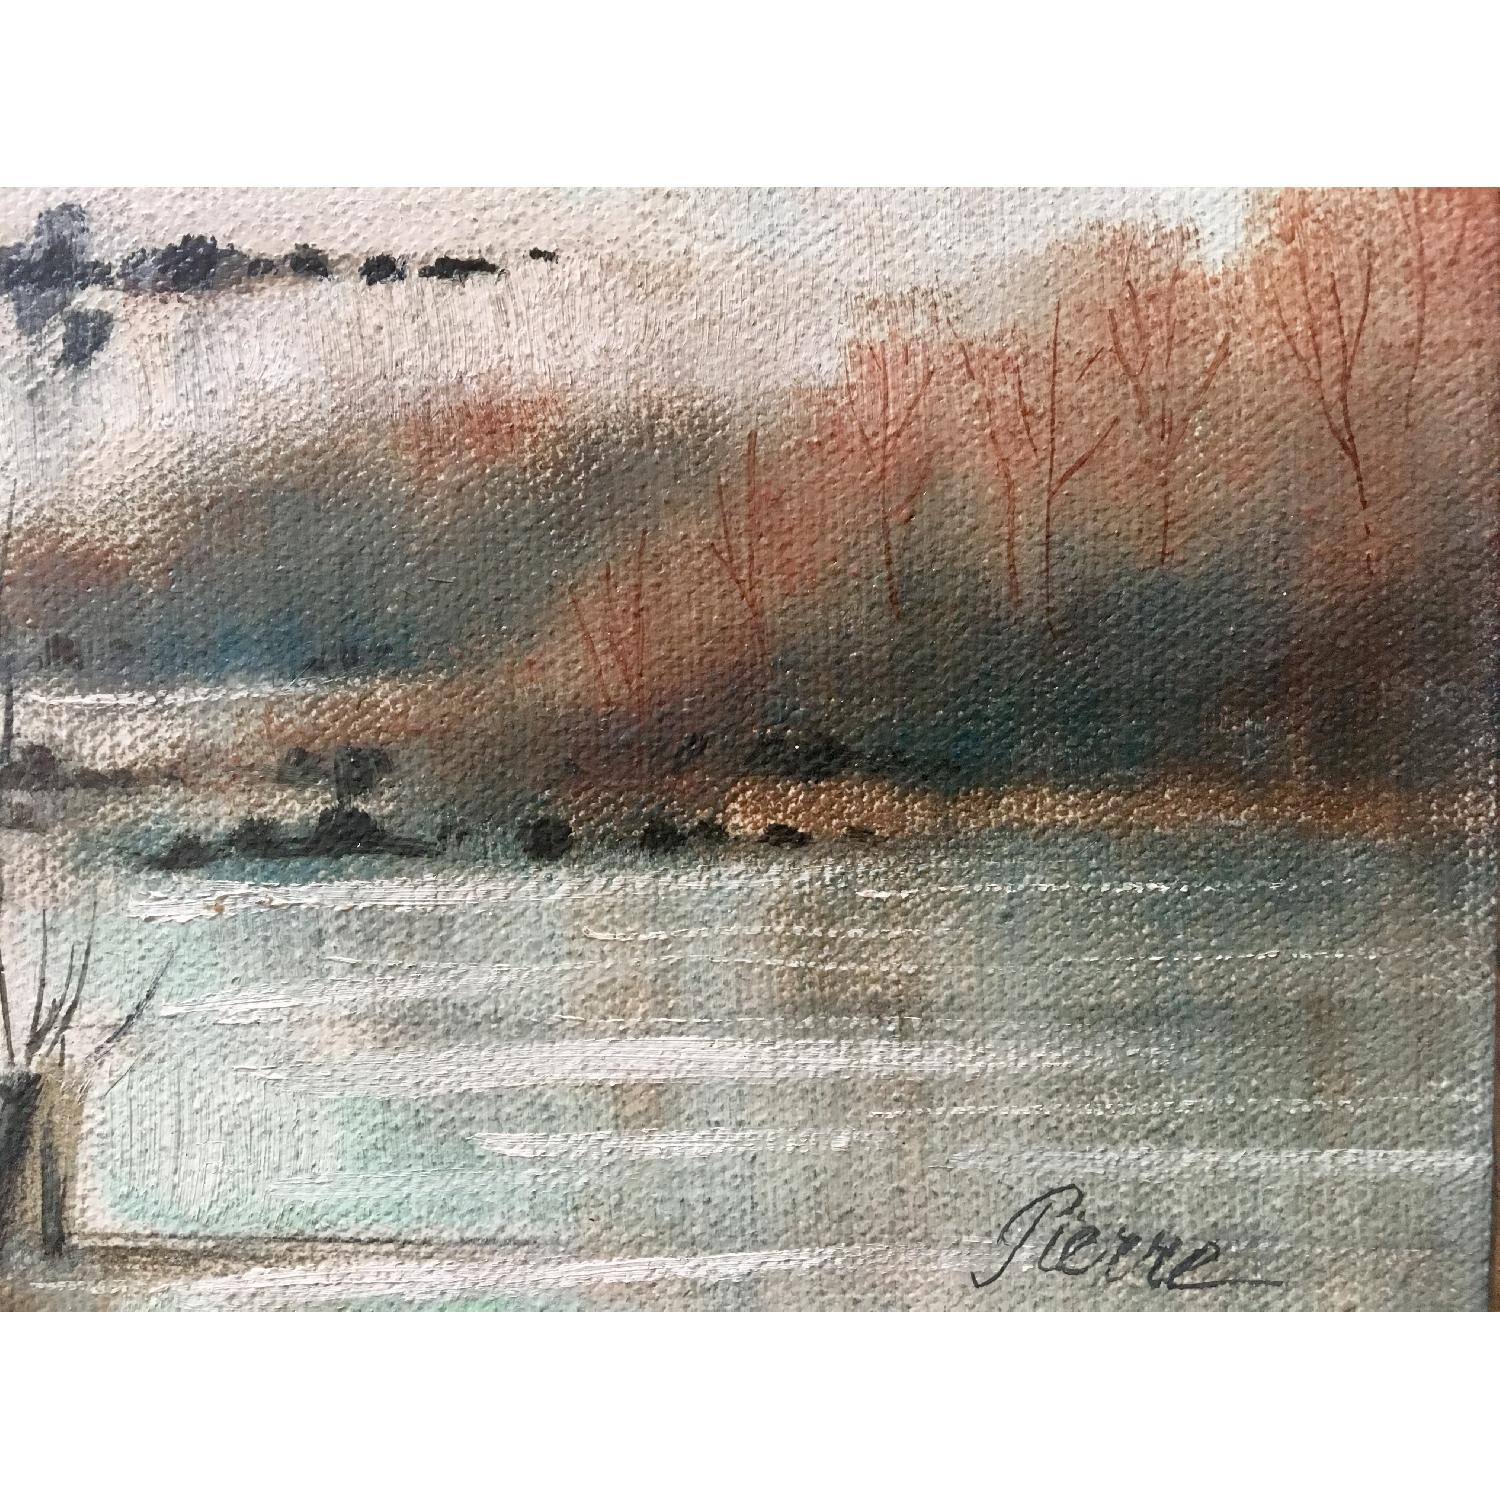 Vintage Dreamy Beach Waterscape Painting - image-4